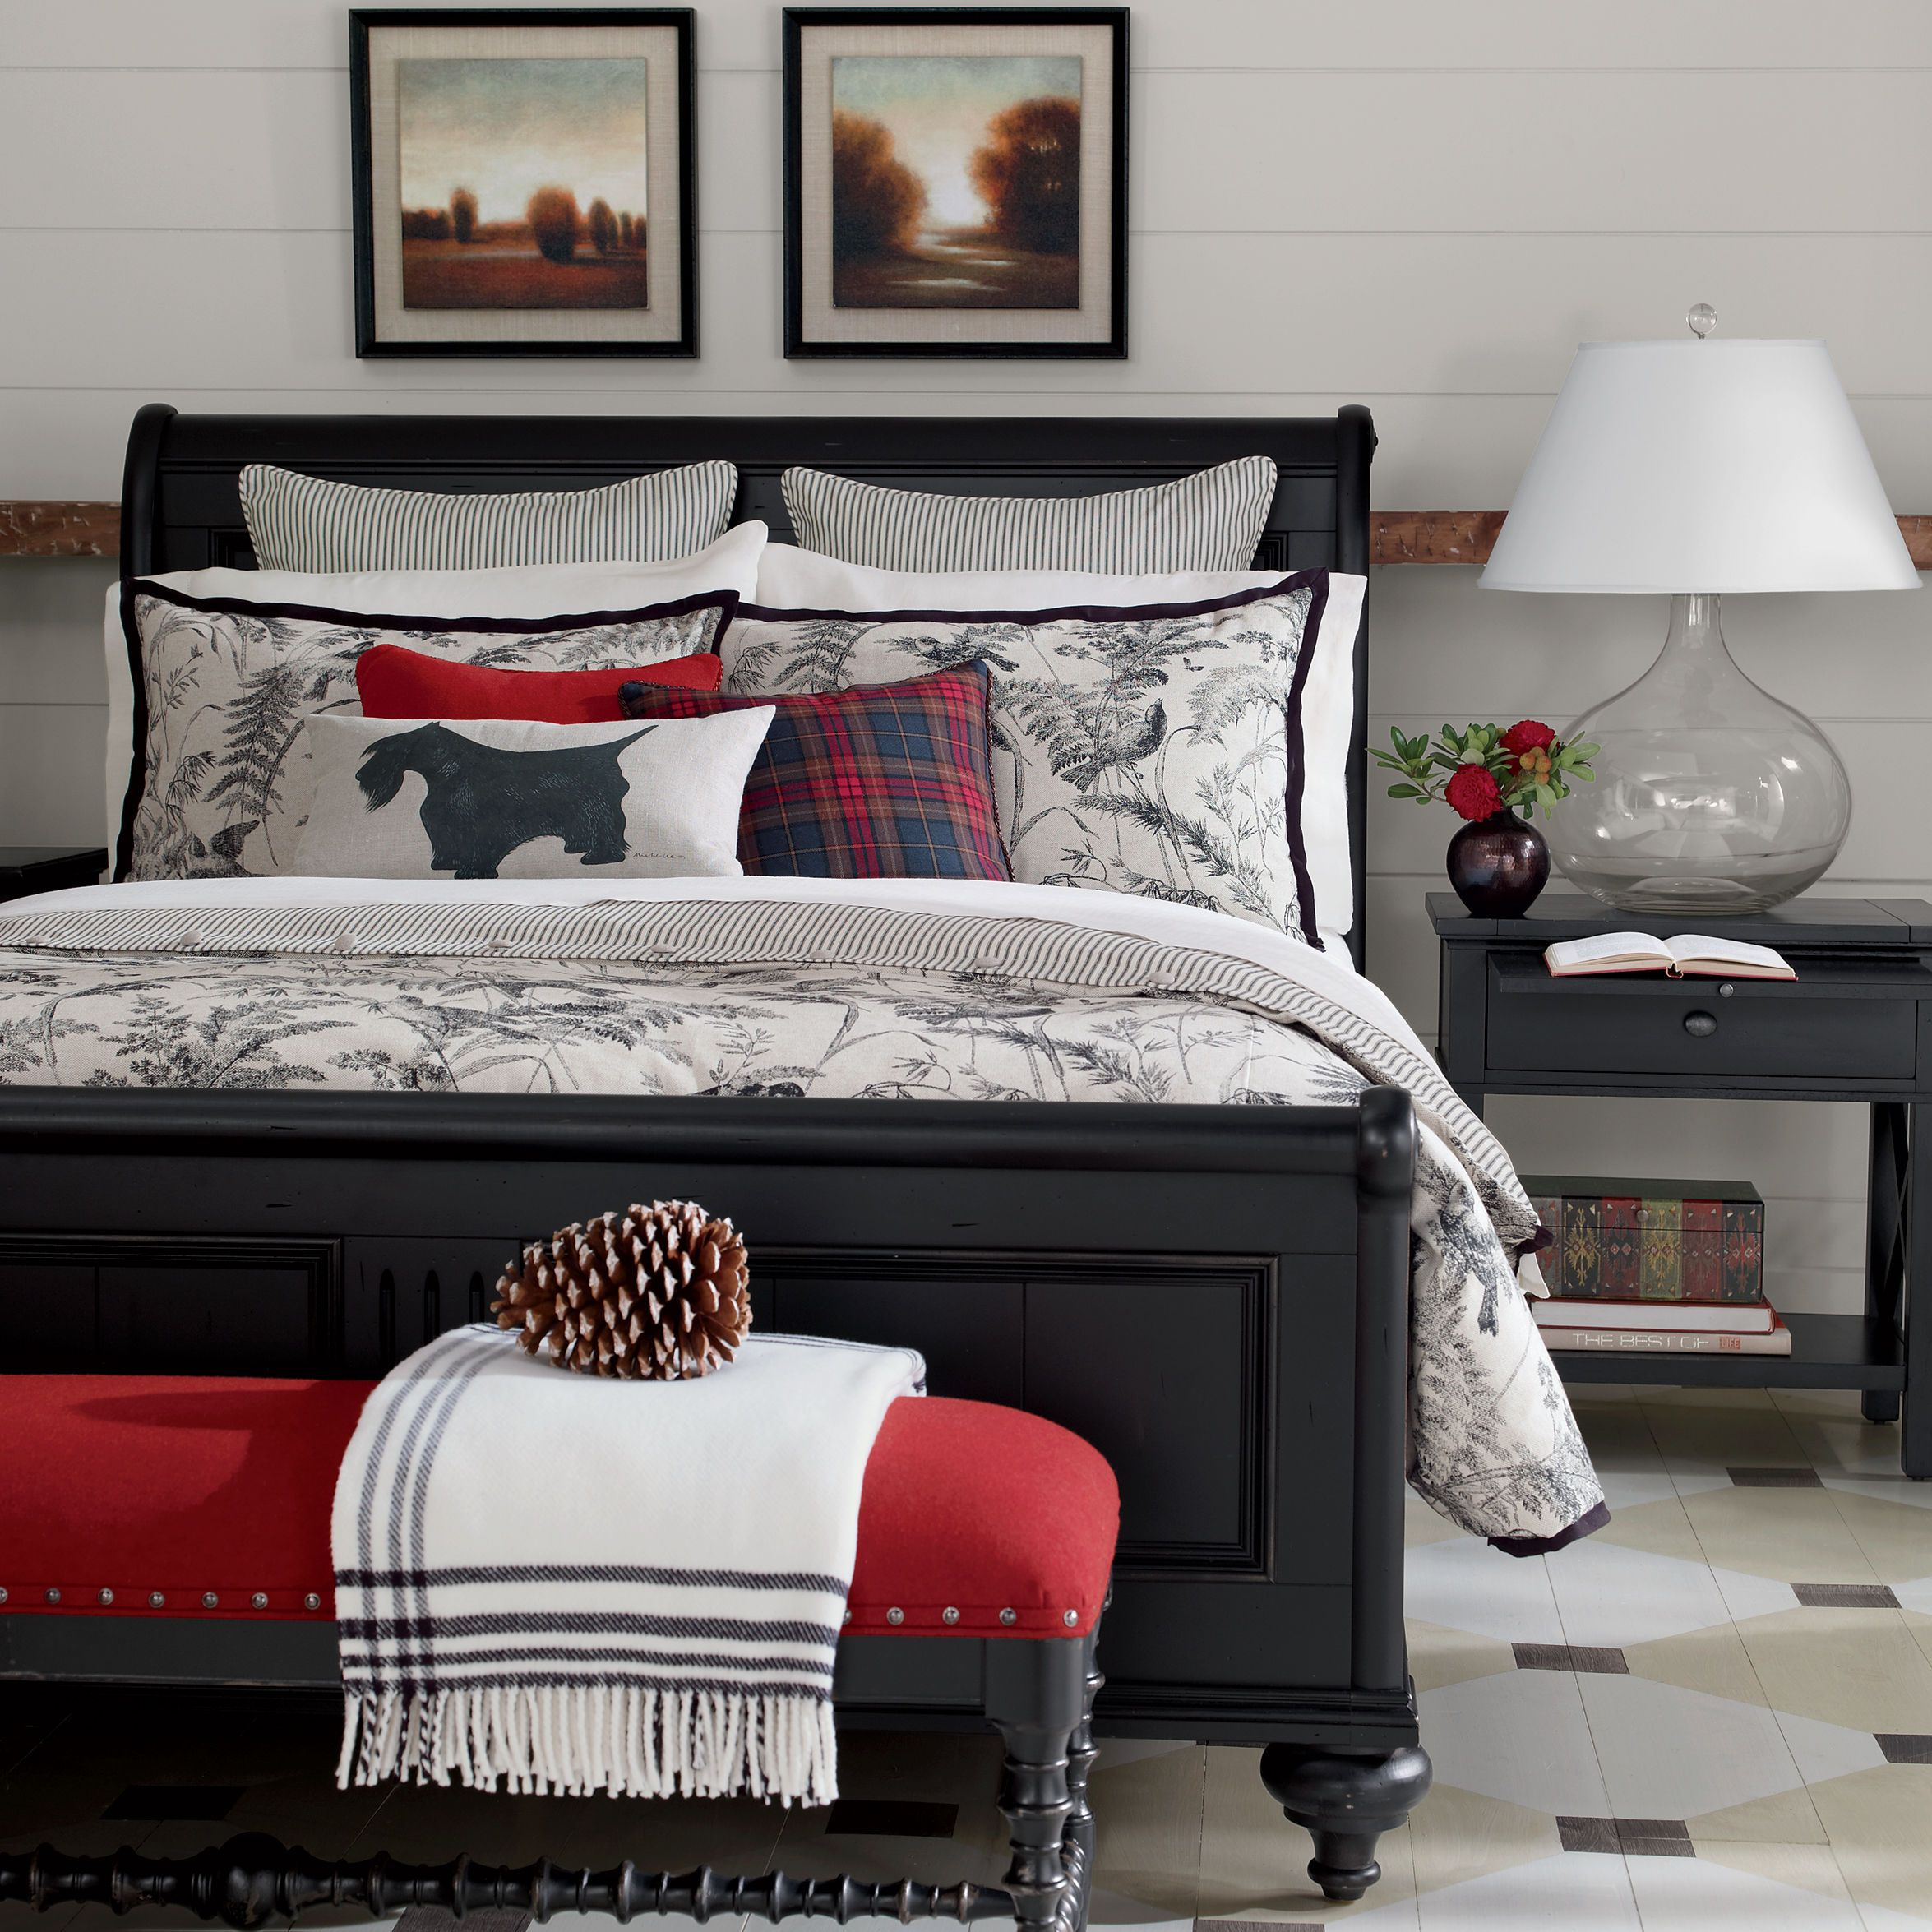 Bedroom Furniture: Vintage Country Bedroom. Black And White Bedroom. Ethan